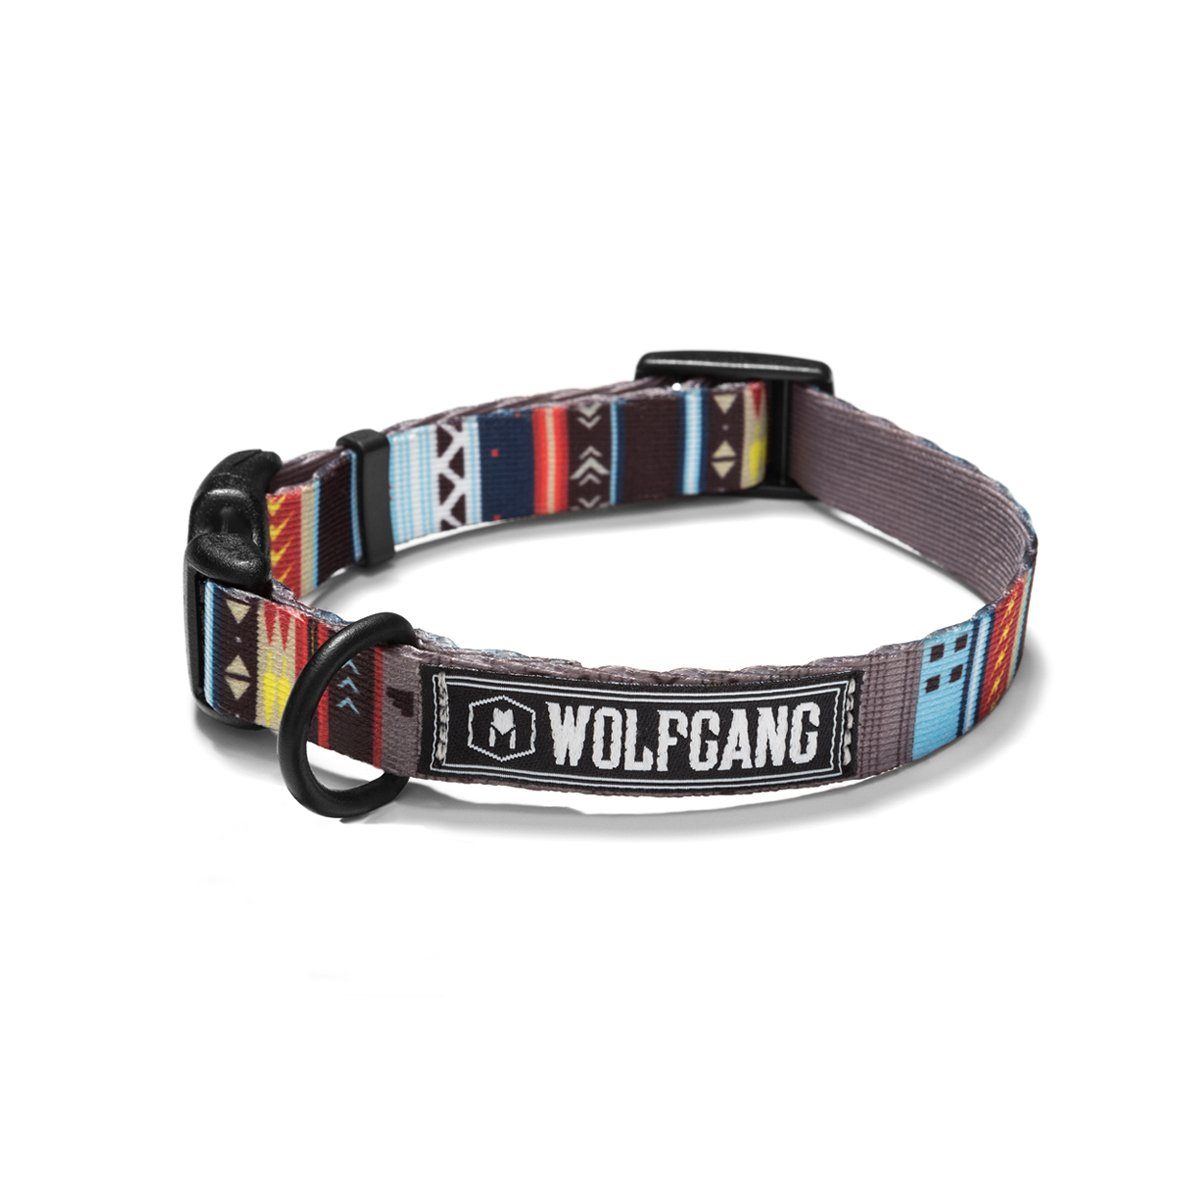 wolfgang-collar-native-lines-5-8-wide